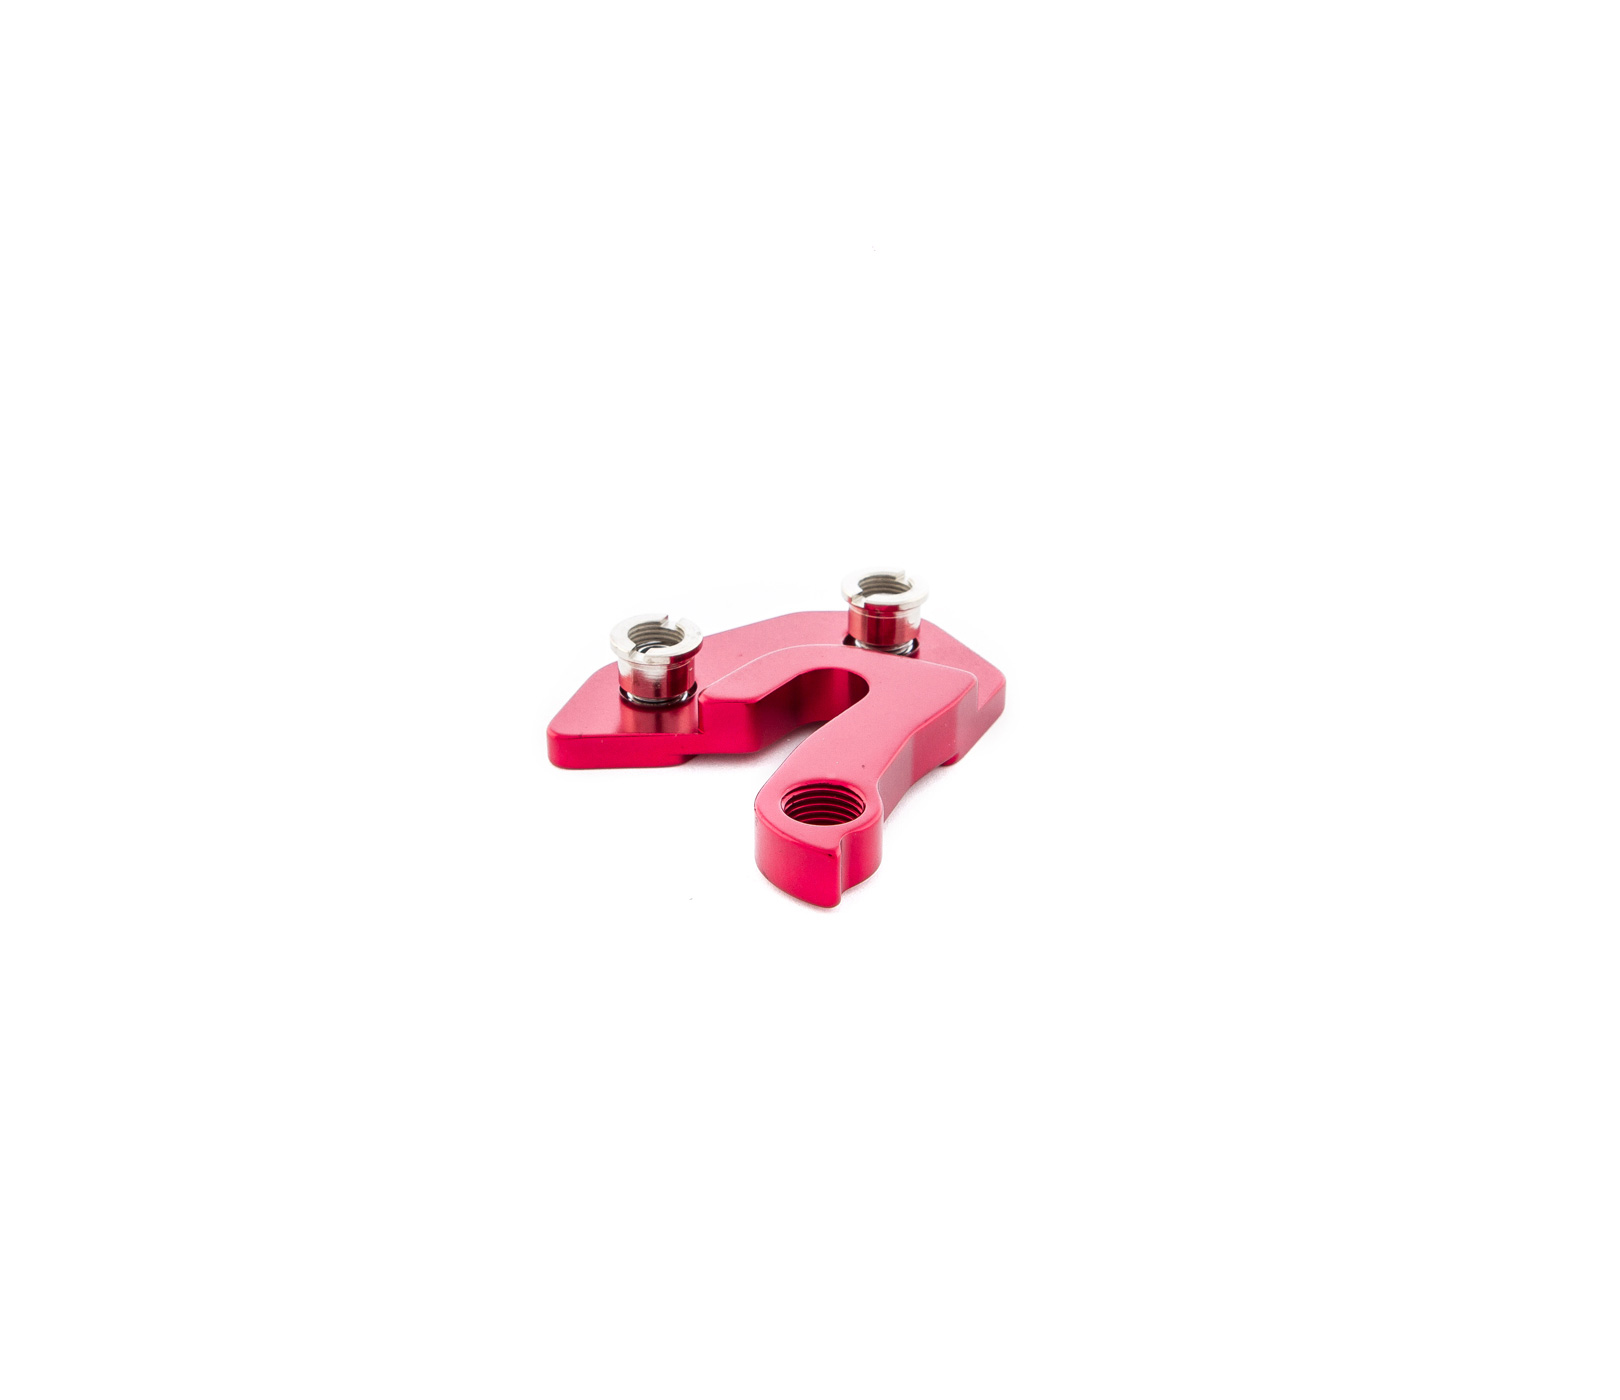 RED RIGHT DERAILLEUR HANGER FOR RALLON MODELS